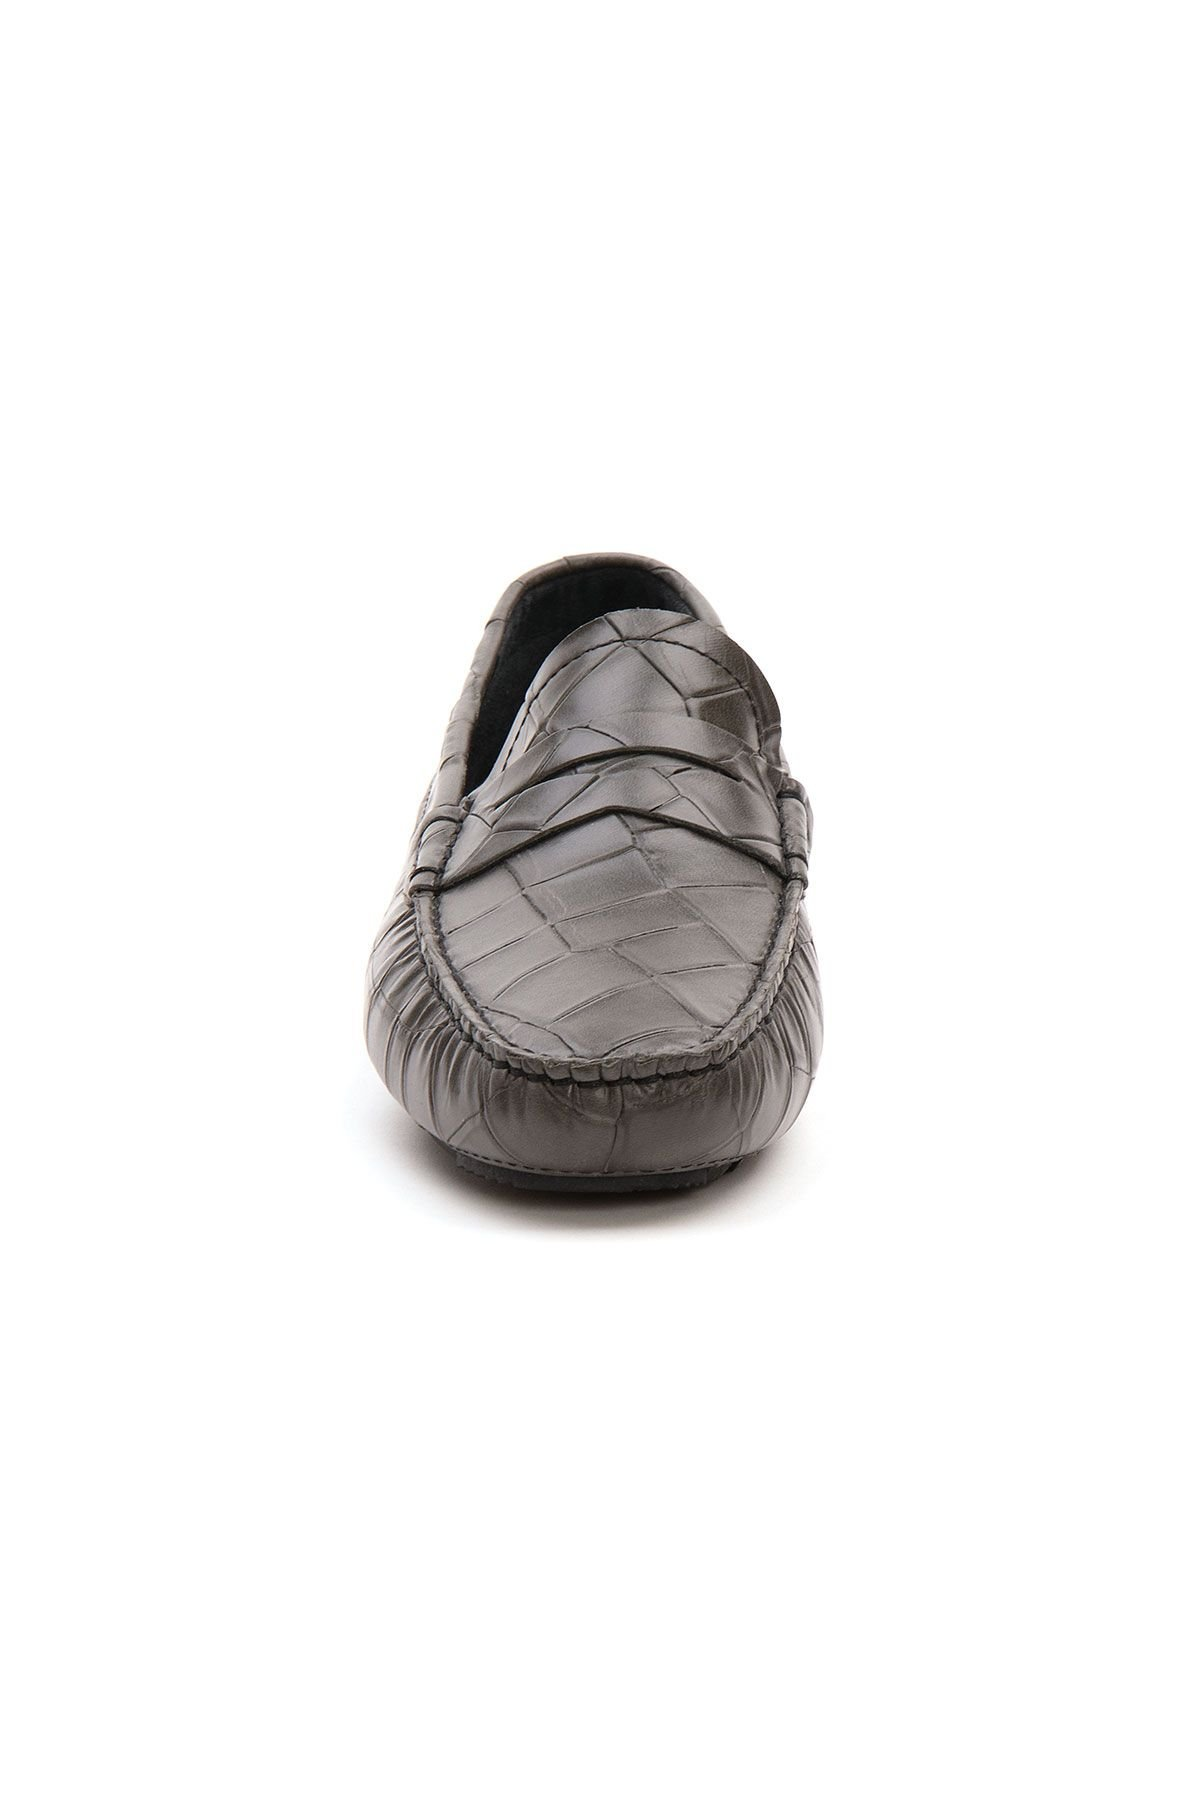 Pegia Genuine Leather Men's Loafer Shoes 500902 Gray